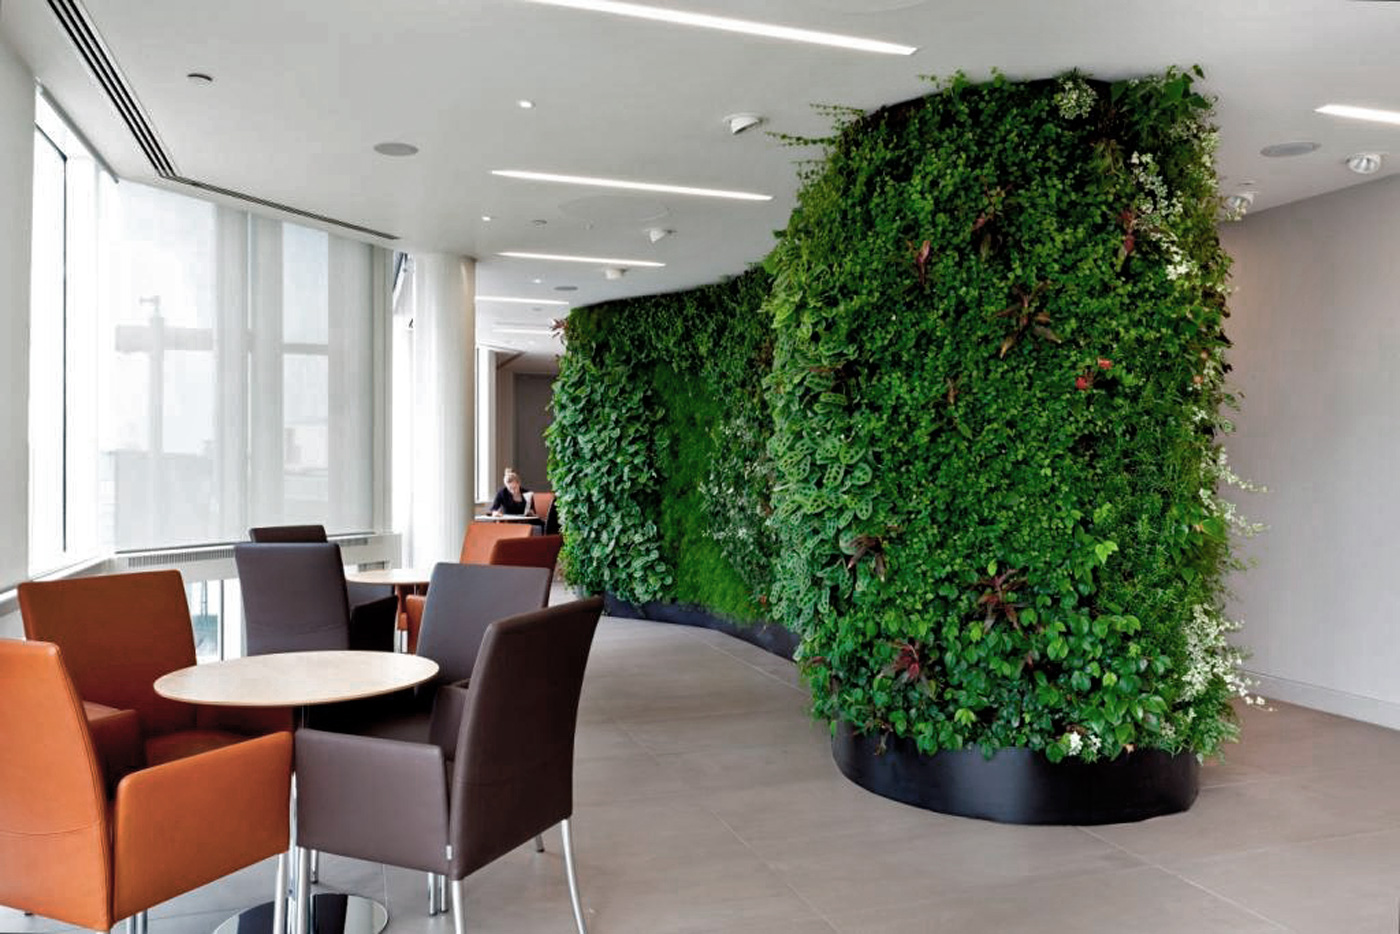 Beau Living Green Walls For Shared Spaces